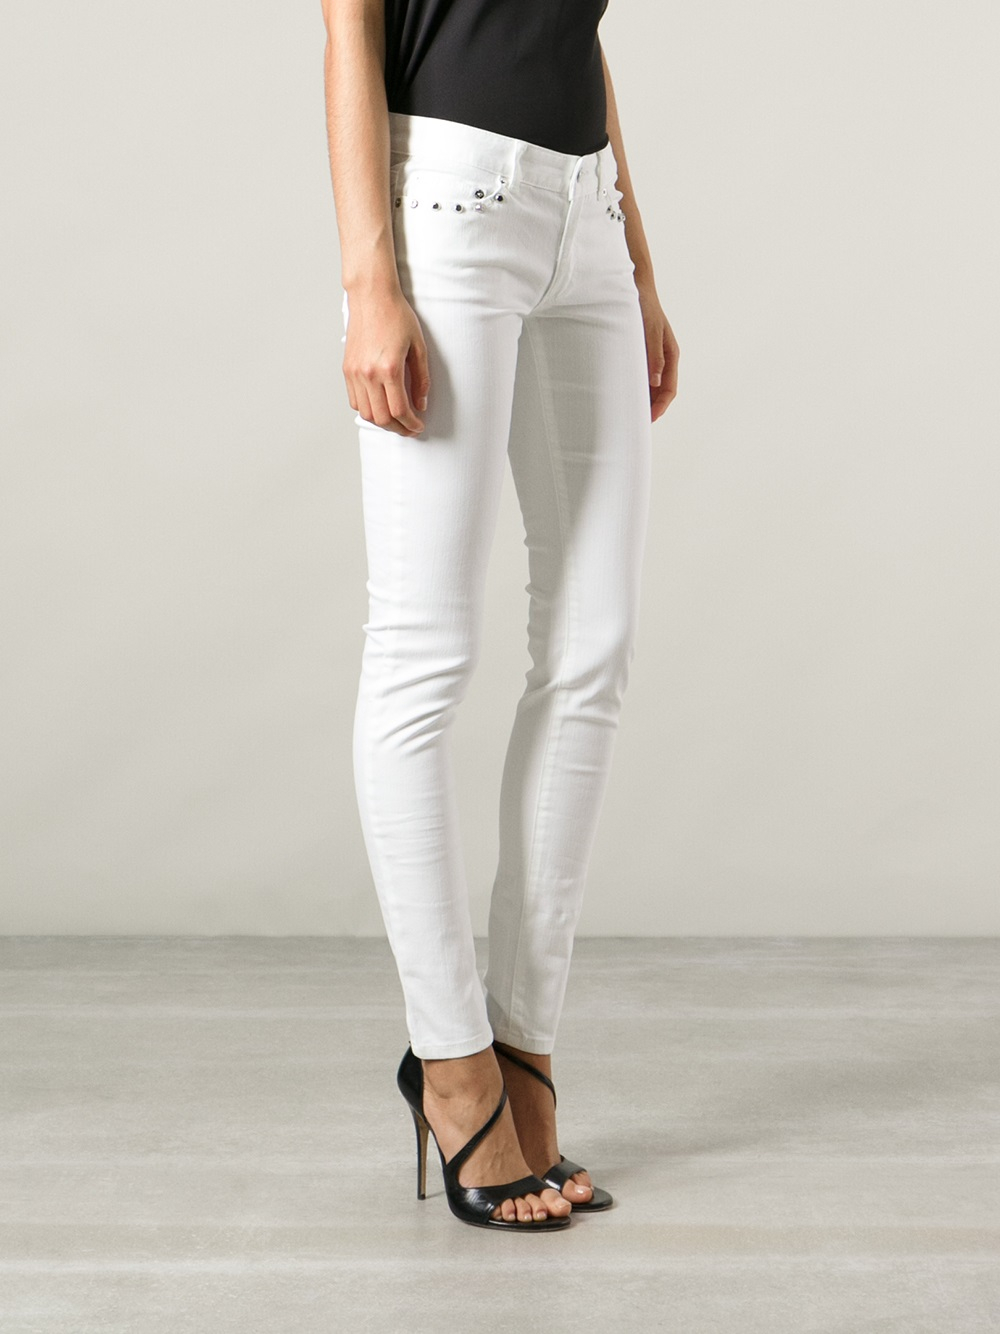 michael kors studded skinny jeans in white lyst. Black Bedroom Furniture Sets. Home Design Ideas